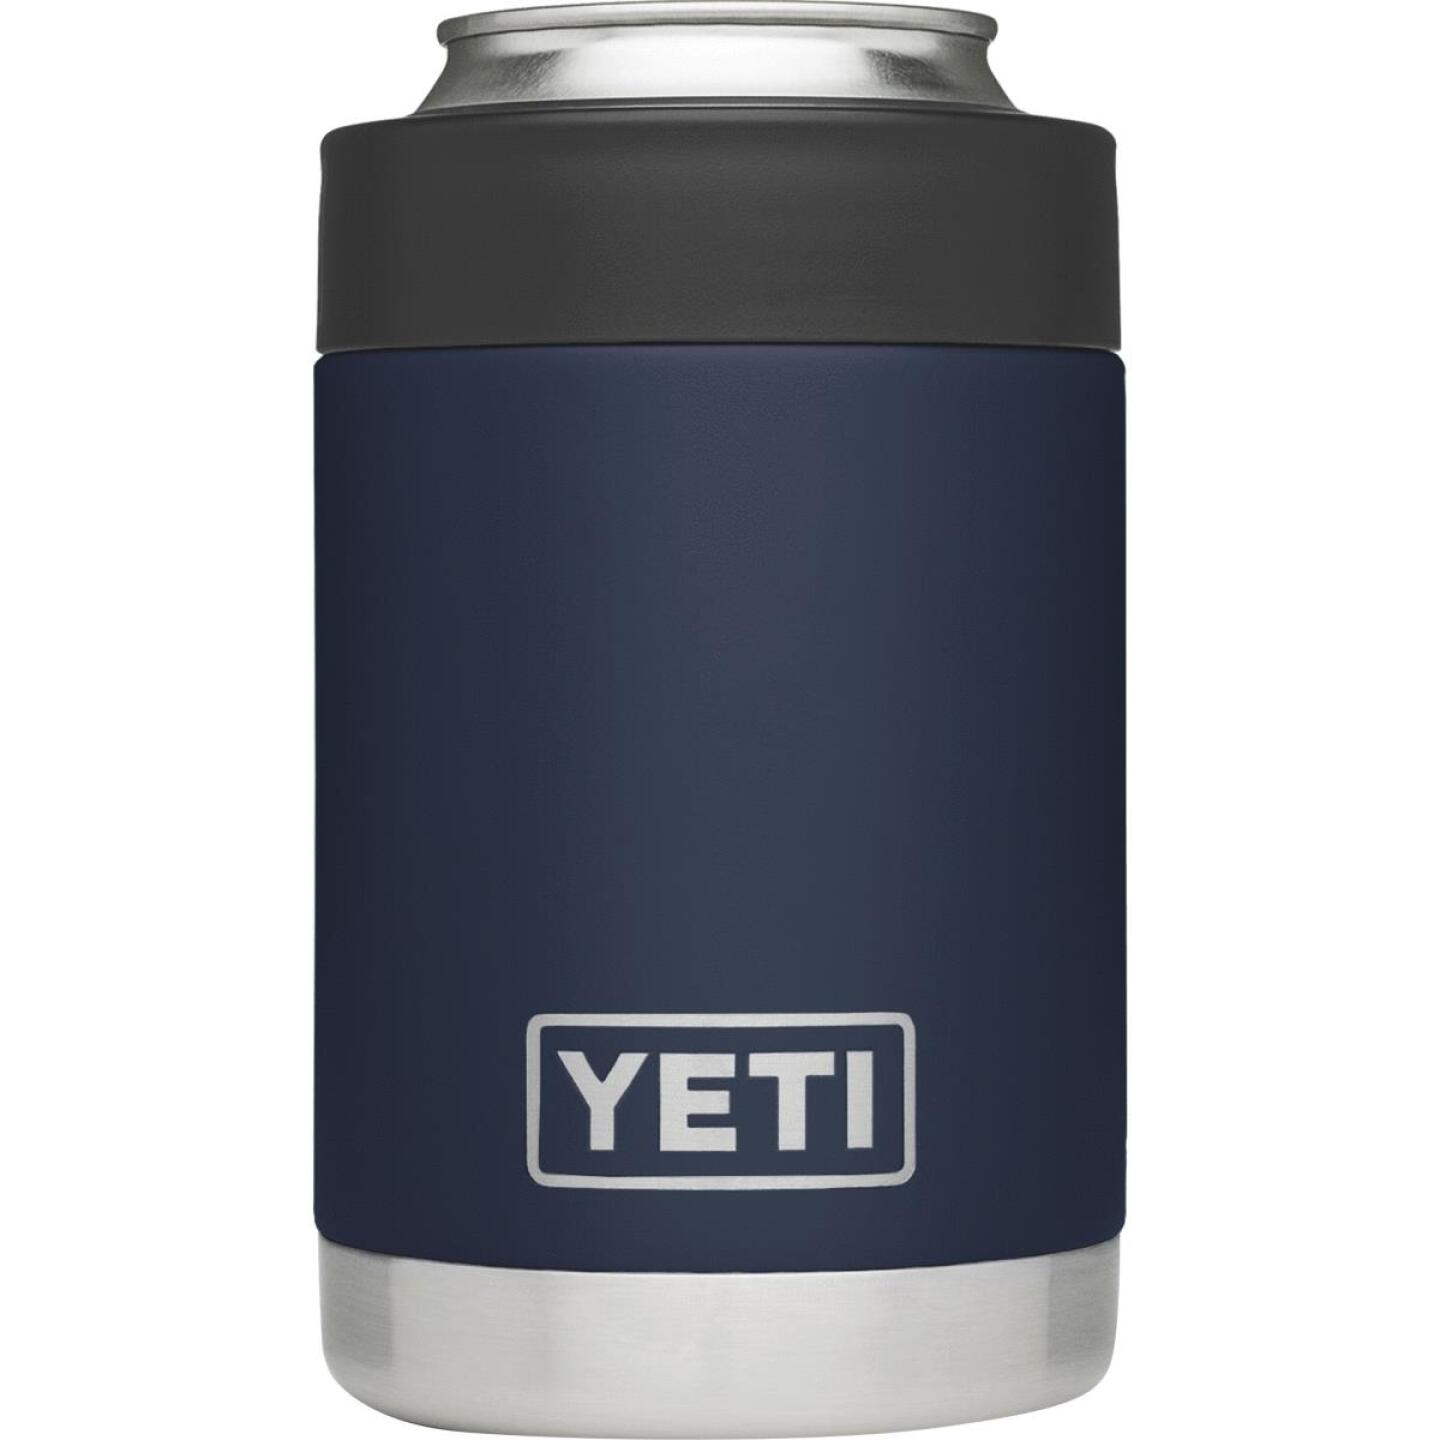 Yeti Rambler Colster 12 Oz. Navy Blue Stainless Steel Insulated Drink Holder Image 1